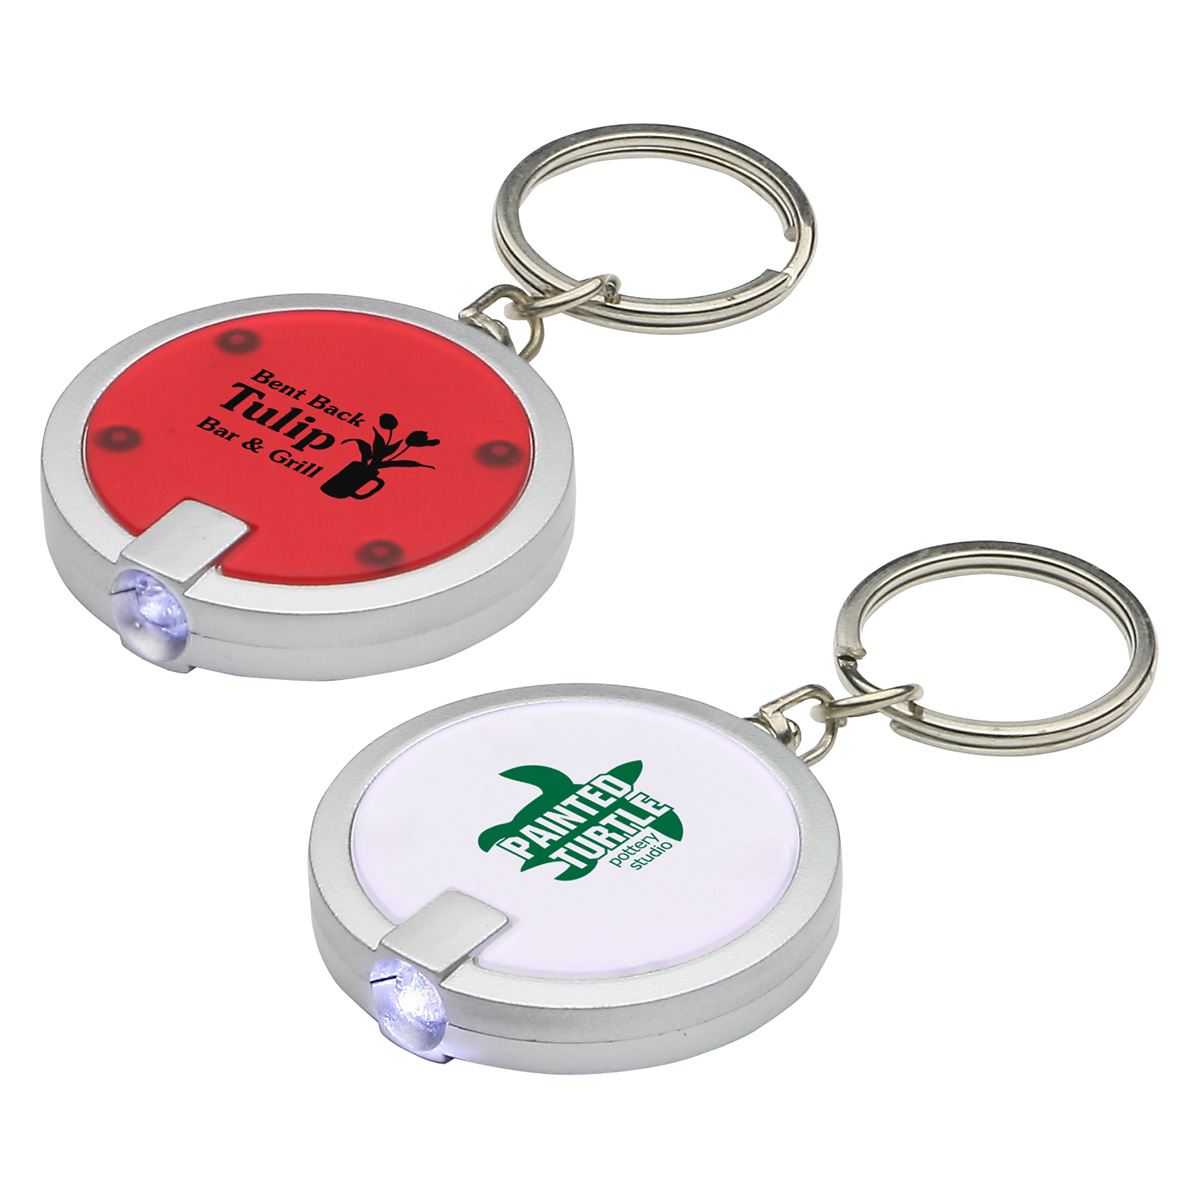 Round Simple Touch LED Keychain, WLT-RS11 - 1 Colour Imprint